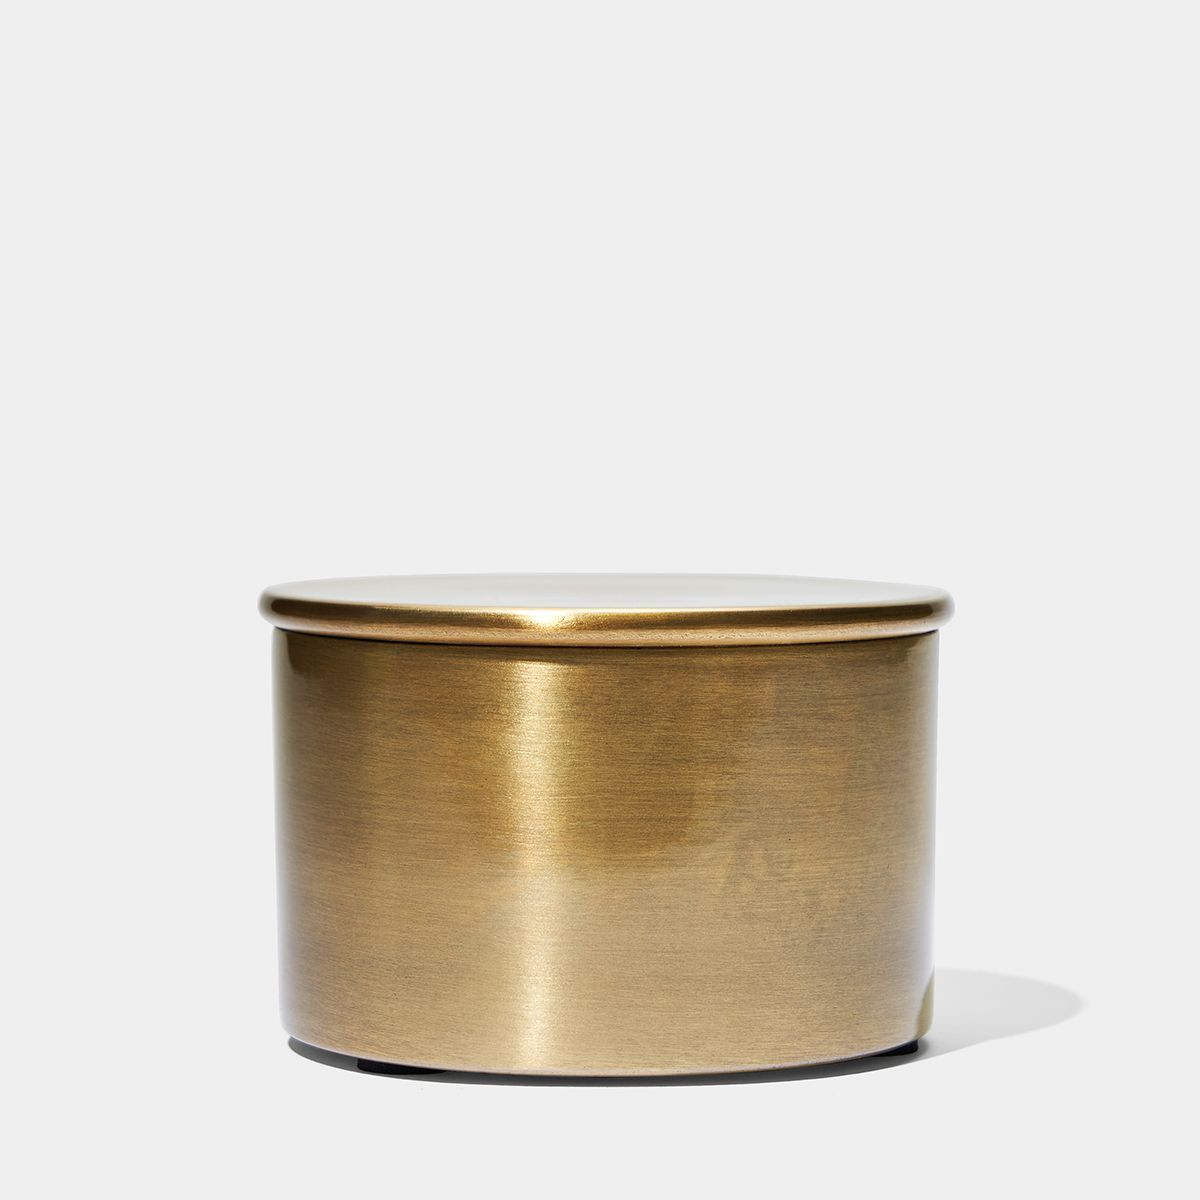 Brass Cache With Lid